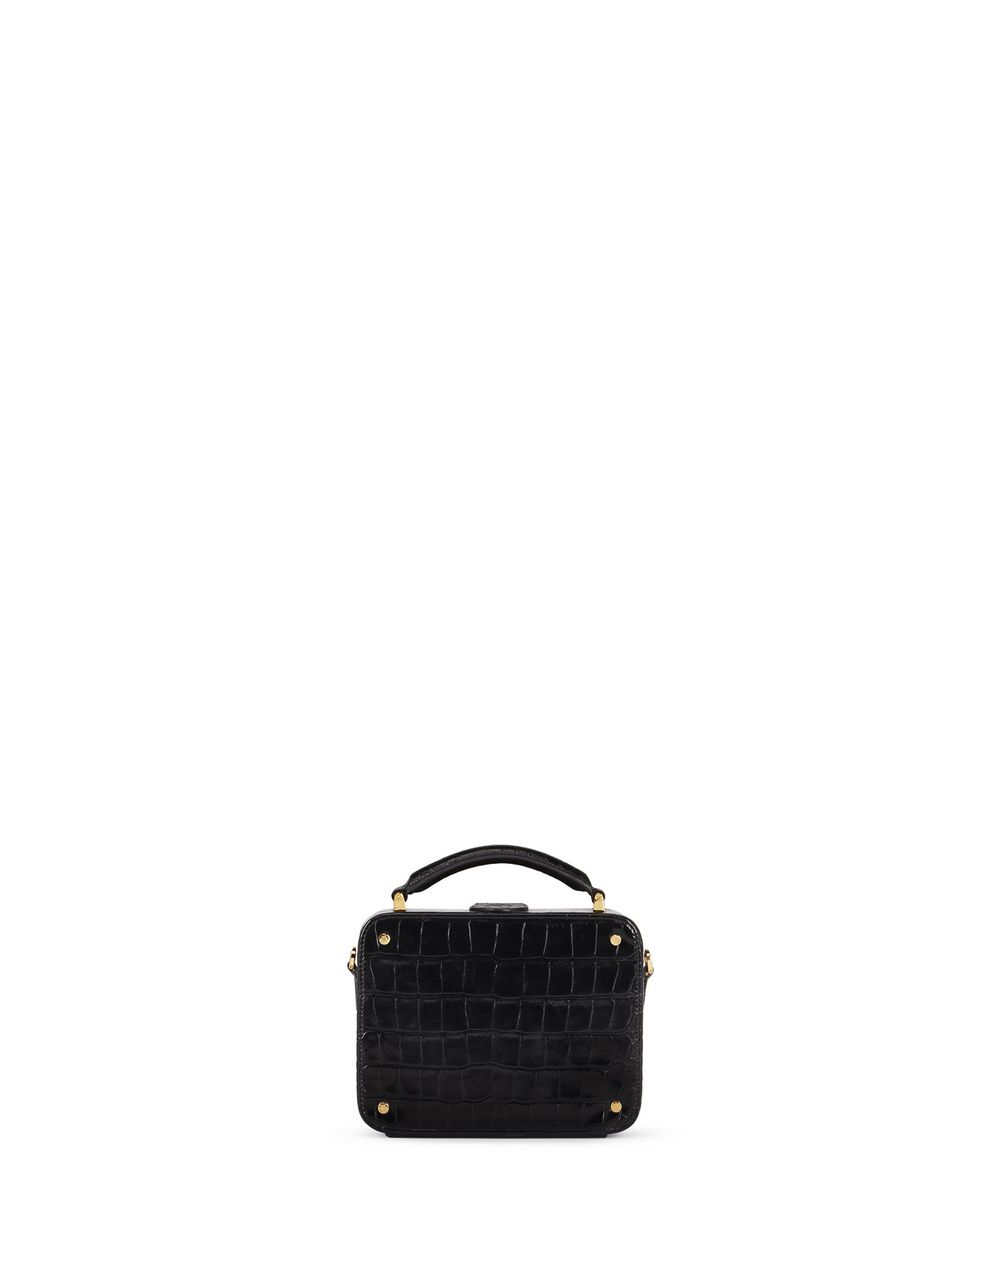 BENTO MINAUDIÈRE IN CROCODILE-EMBOSSED LEATHER - Lanvin